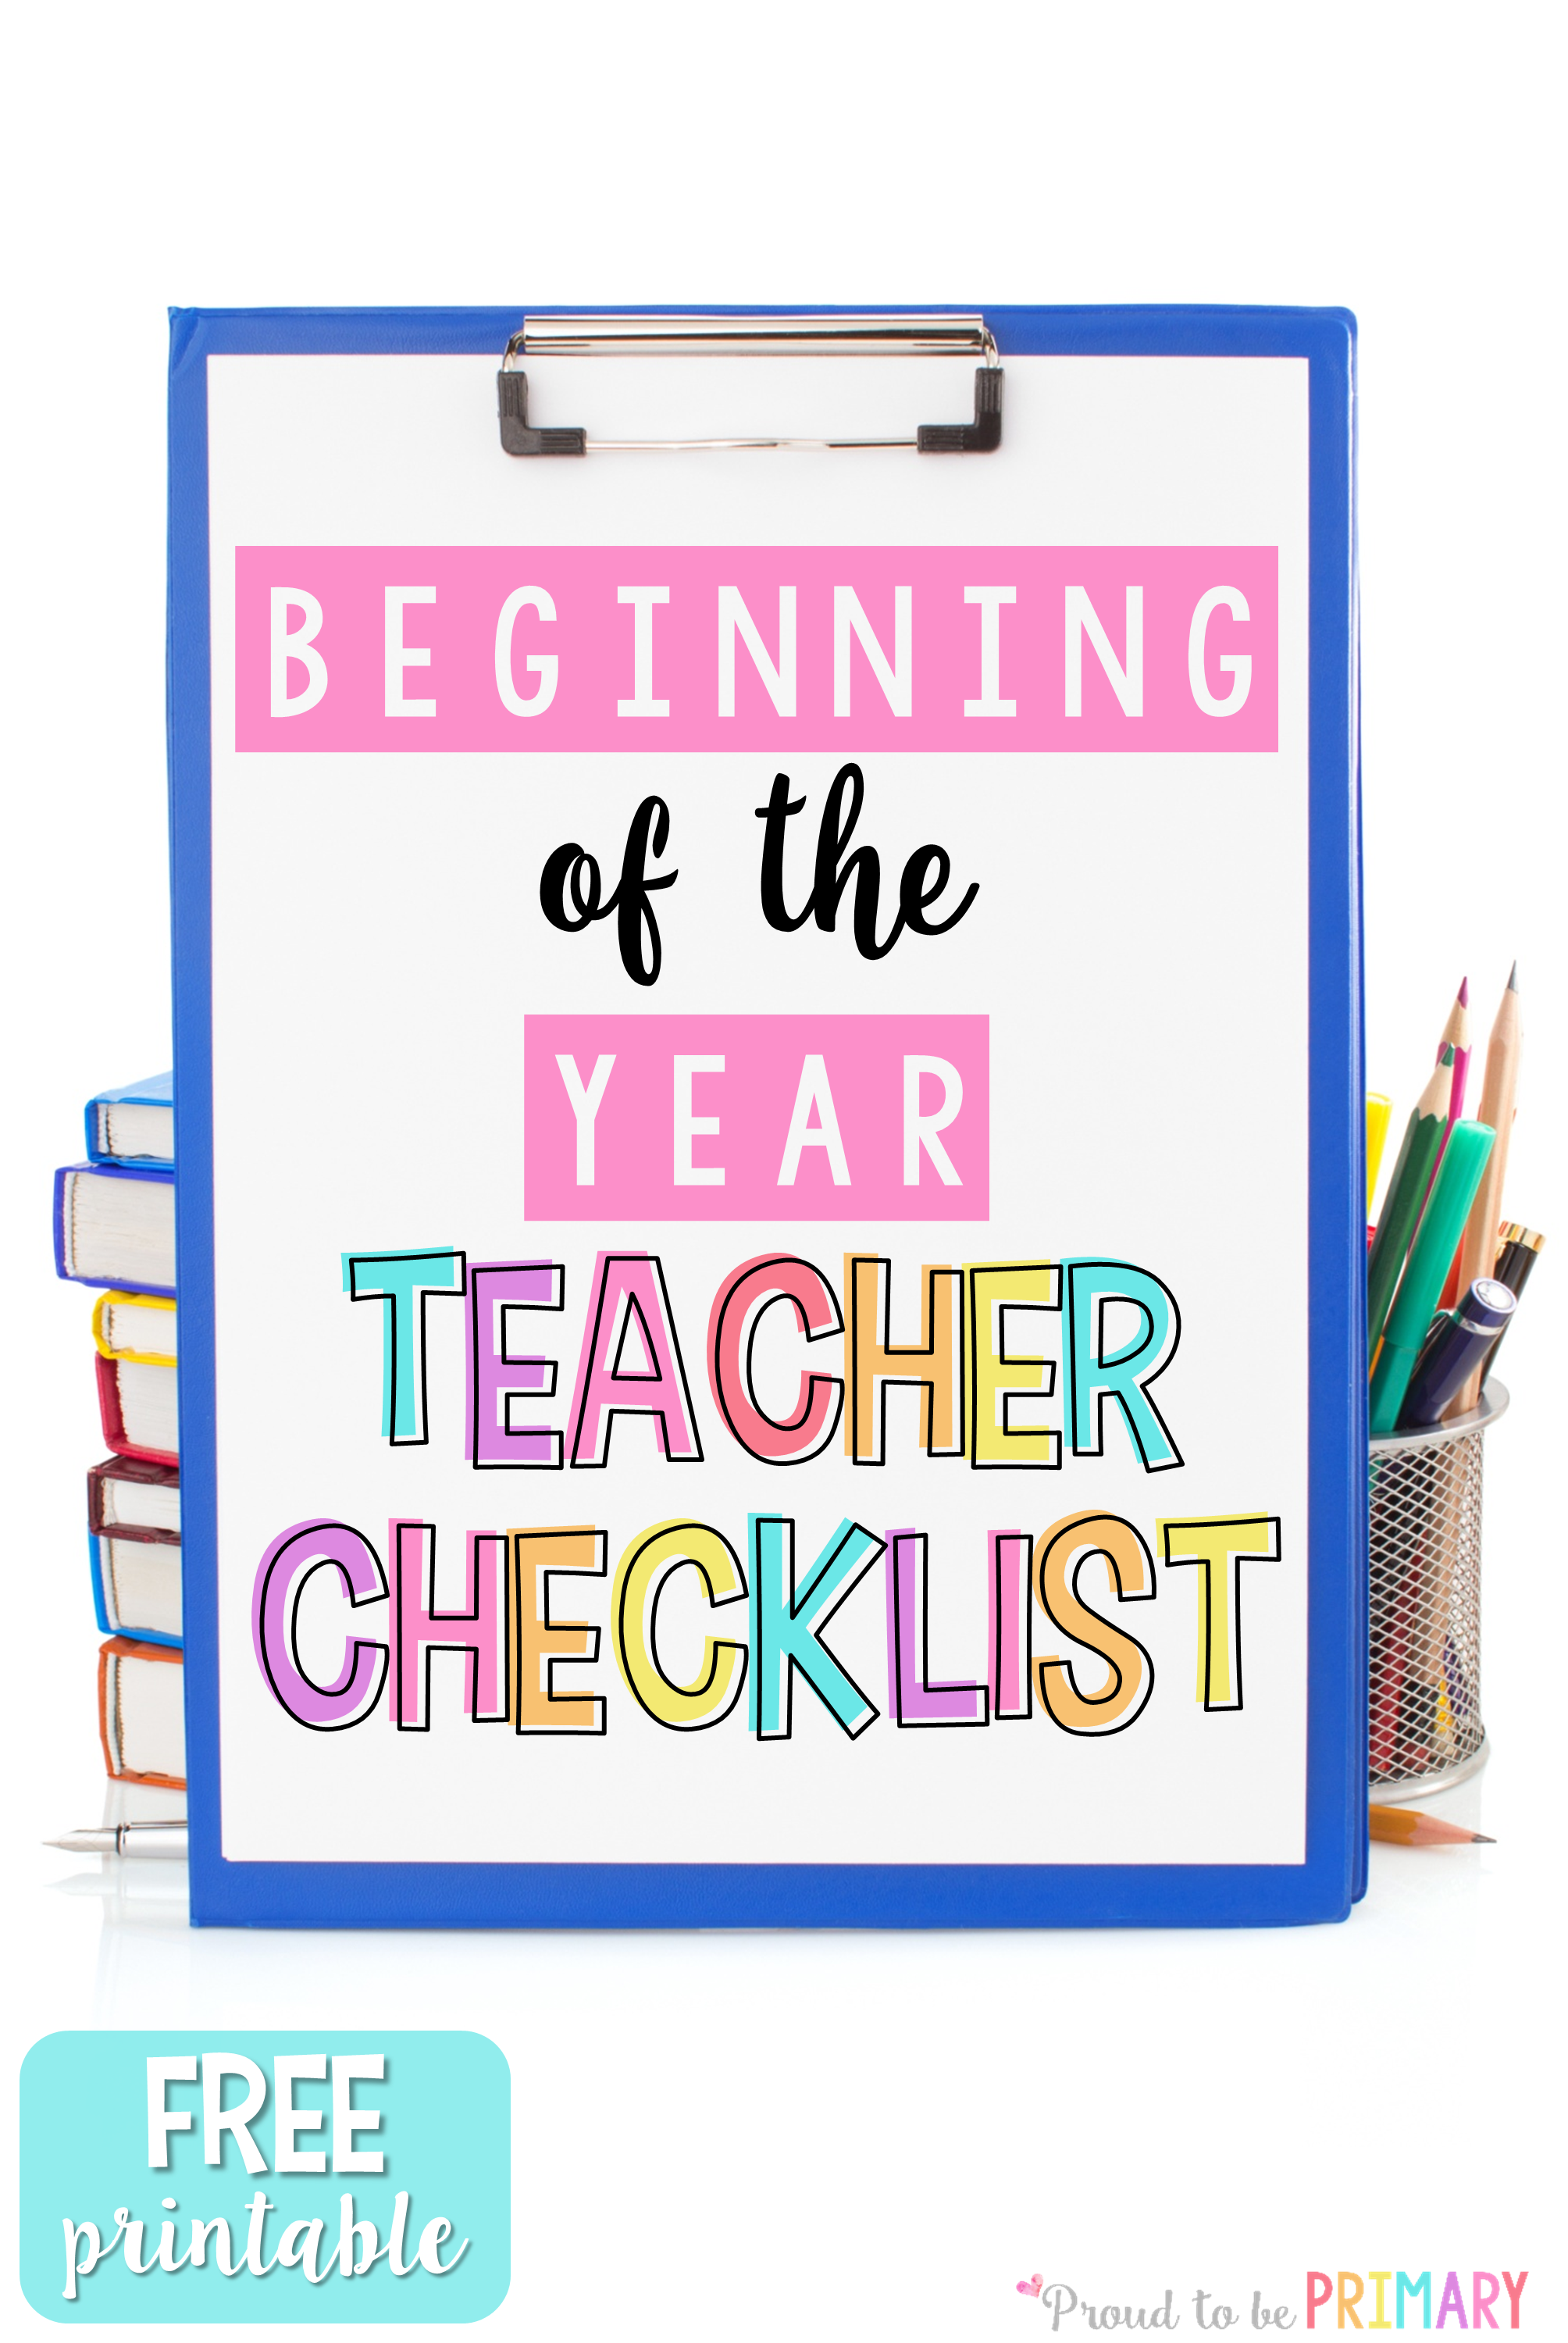 time management for teachers - beginning of the year teacher checklist freebie